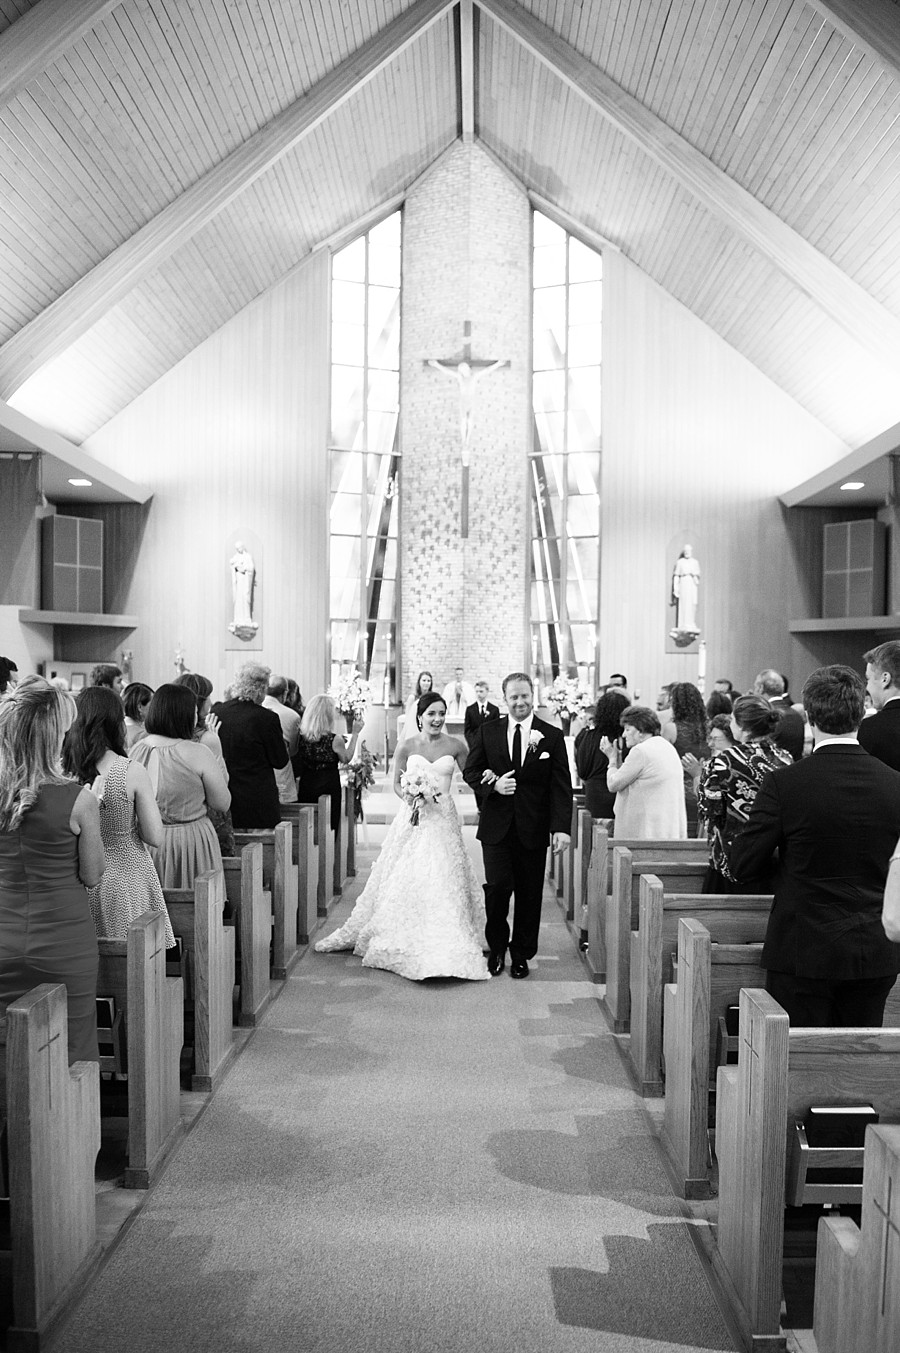 Weston_CT_Wedding_MM_28.jpg